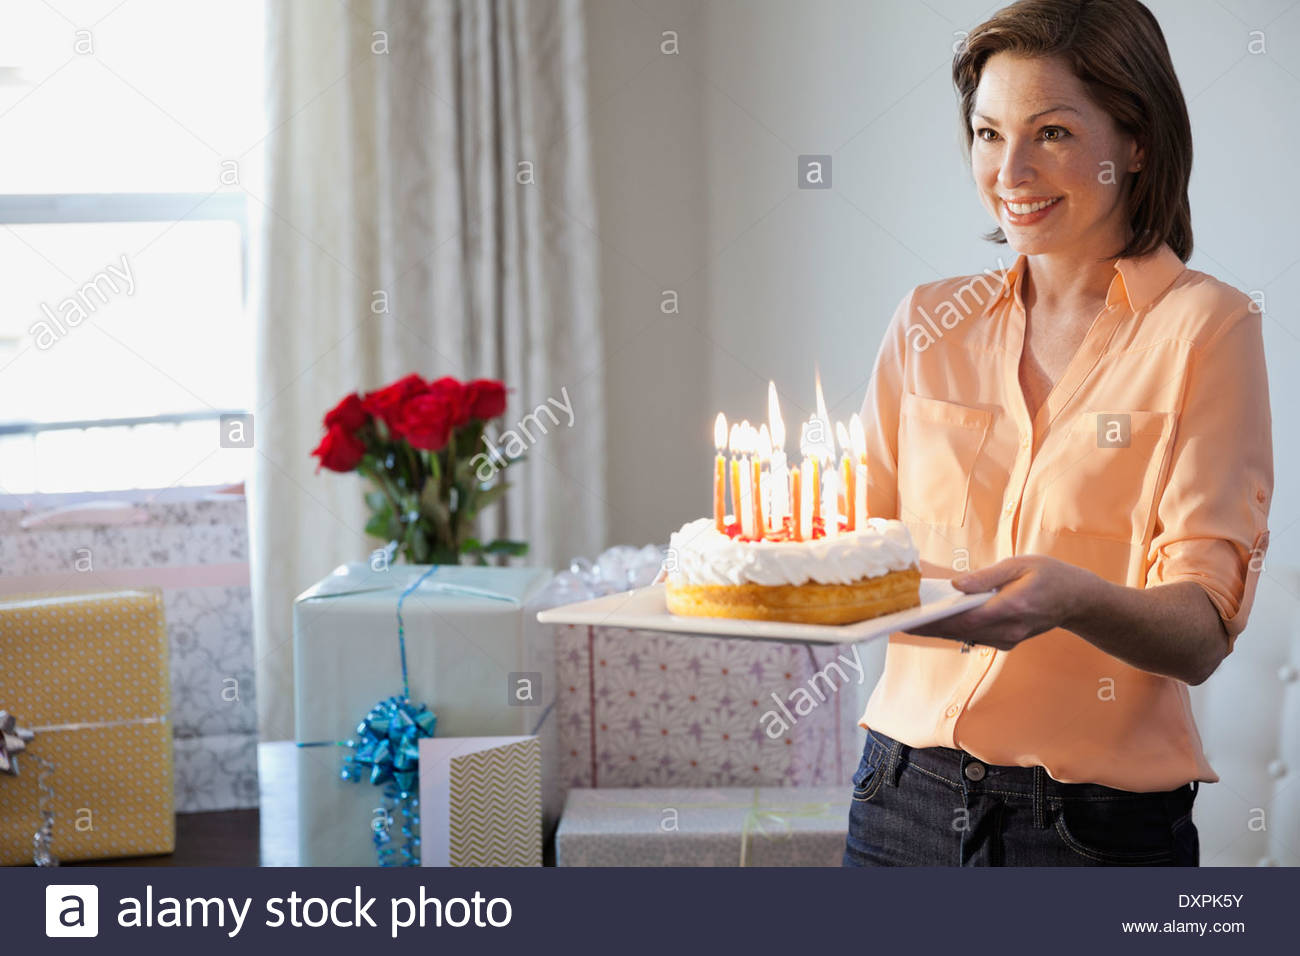 Smiling woman holding birthday cake at home - Stock Image